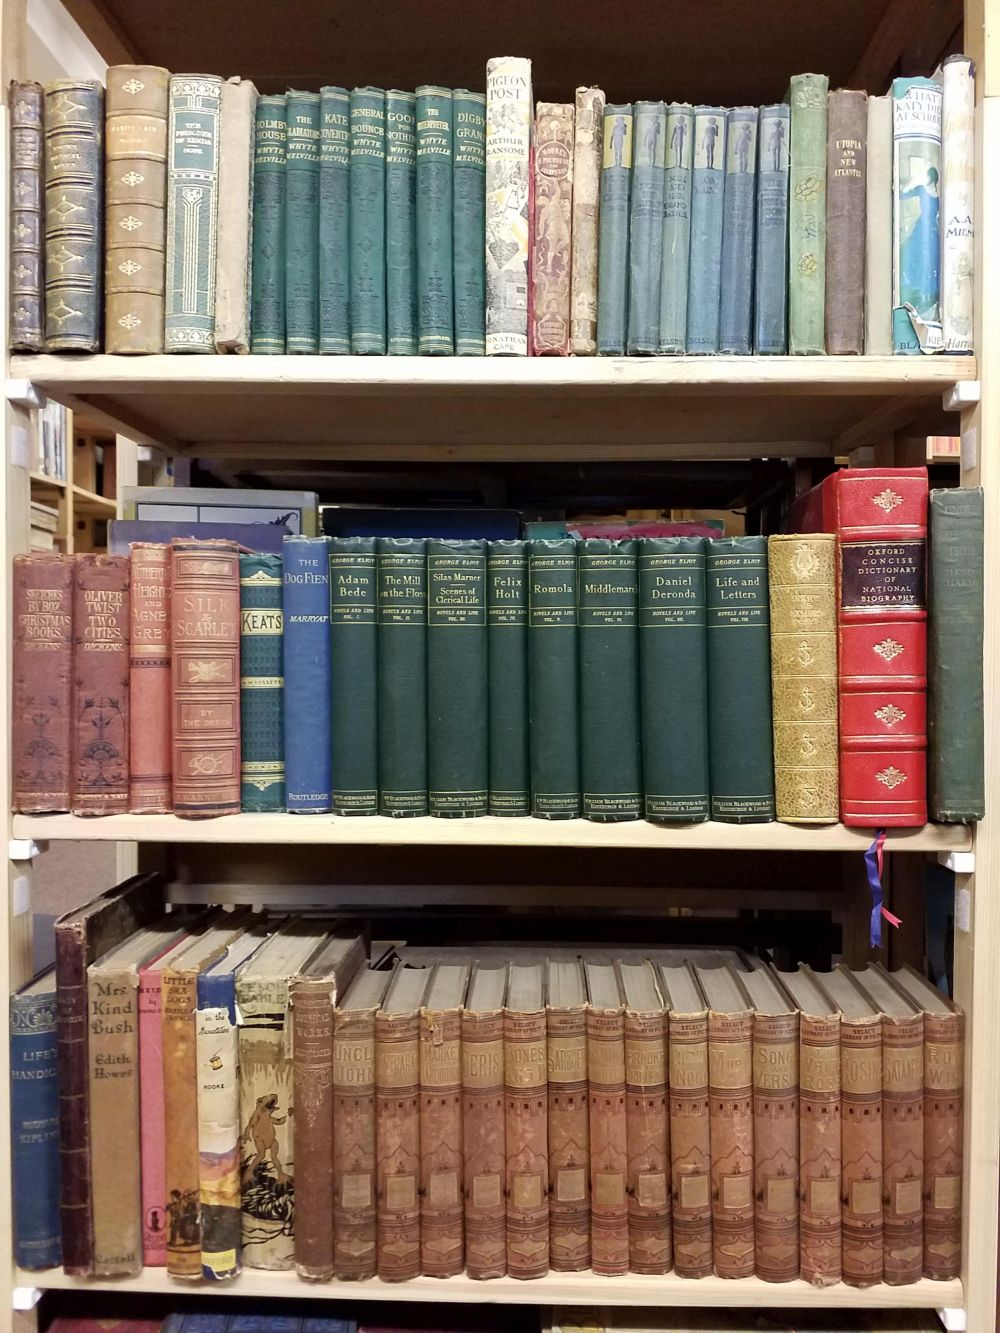 Literature. A large collection of late 19th & early 20th century & modern illustrated literature & - Image 2 of 2